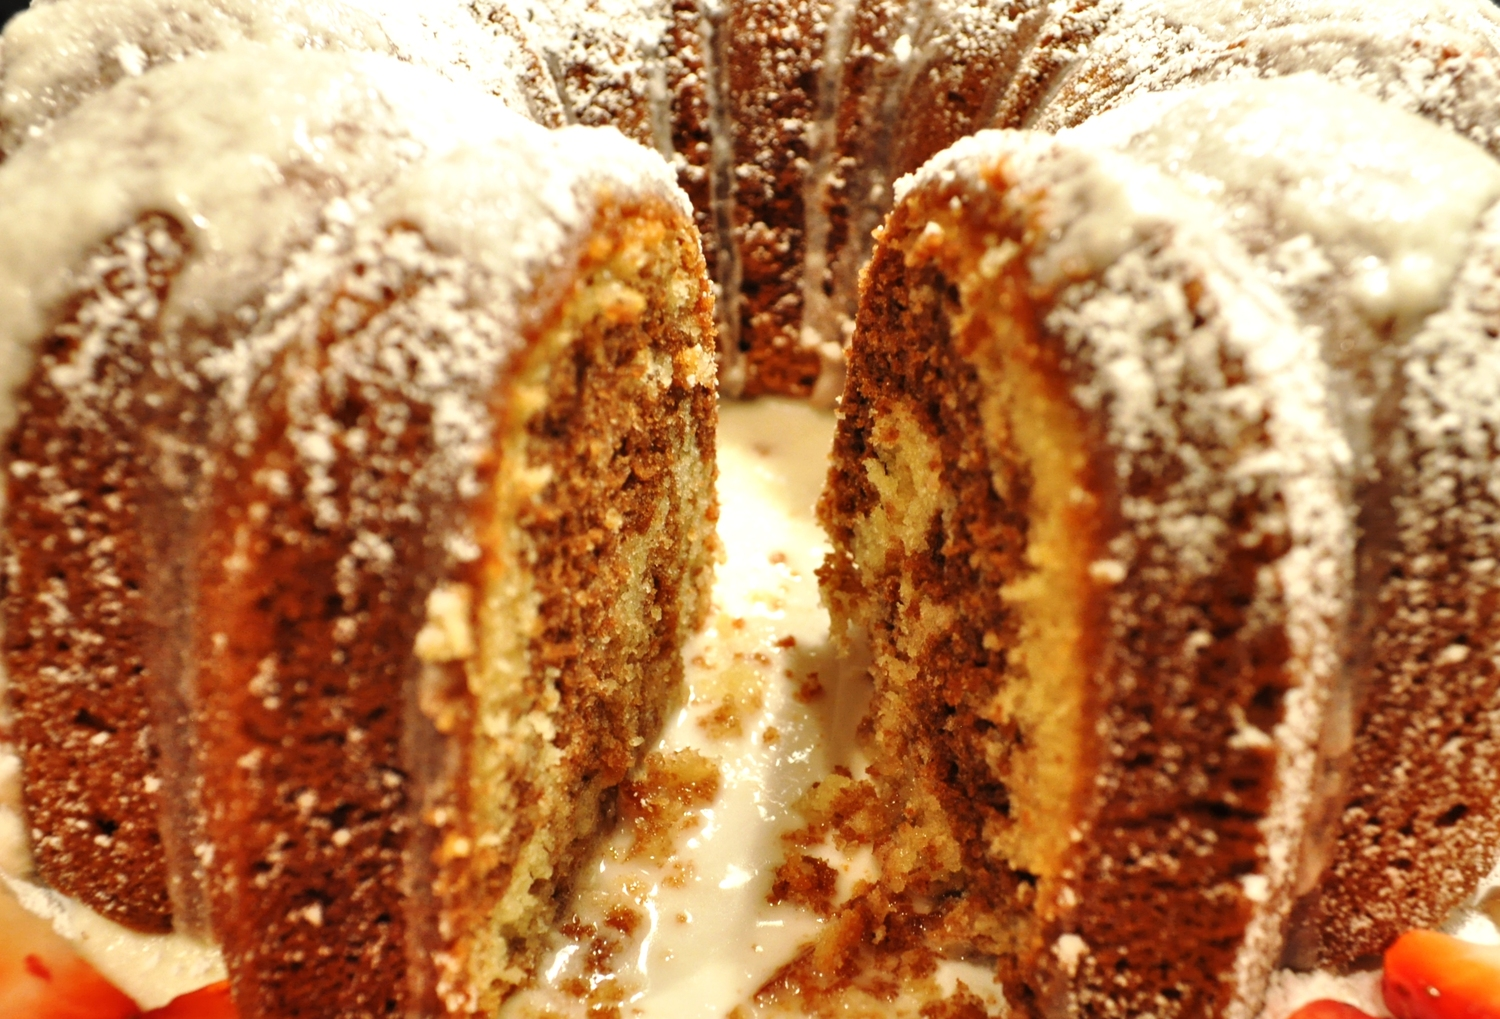 Marble Bundt Cake with Simple Sugar Frosting - The Male Baker